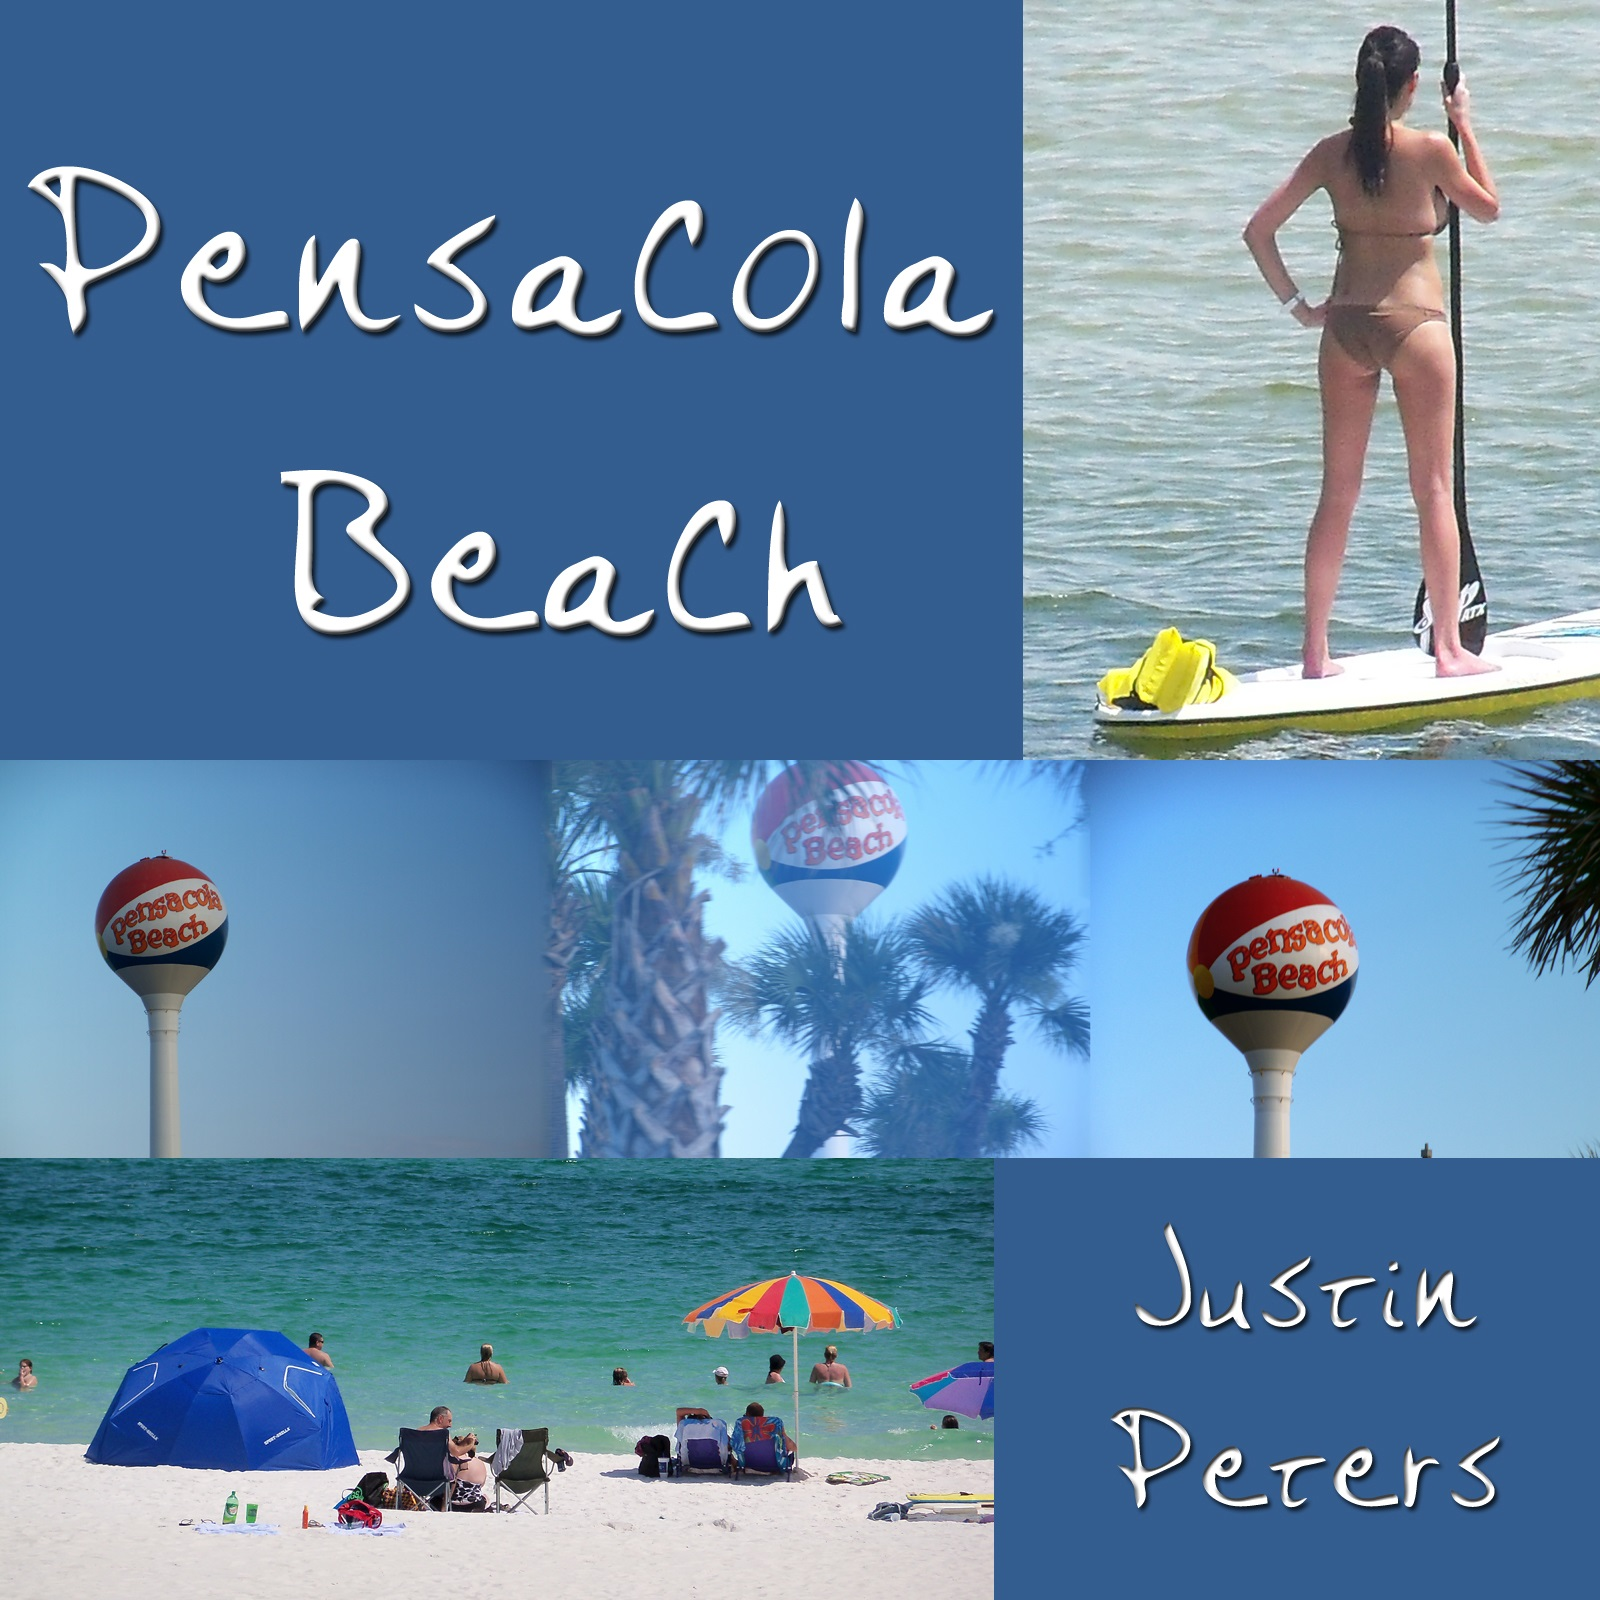 Pensacola justin peters cover